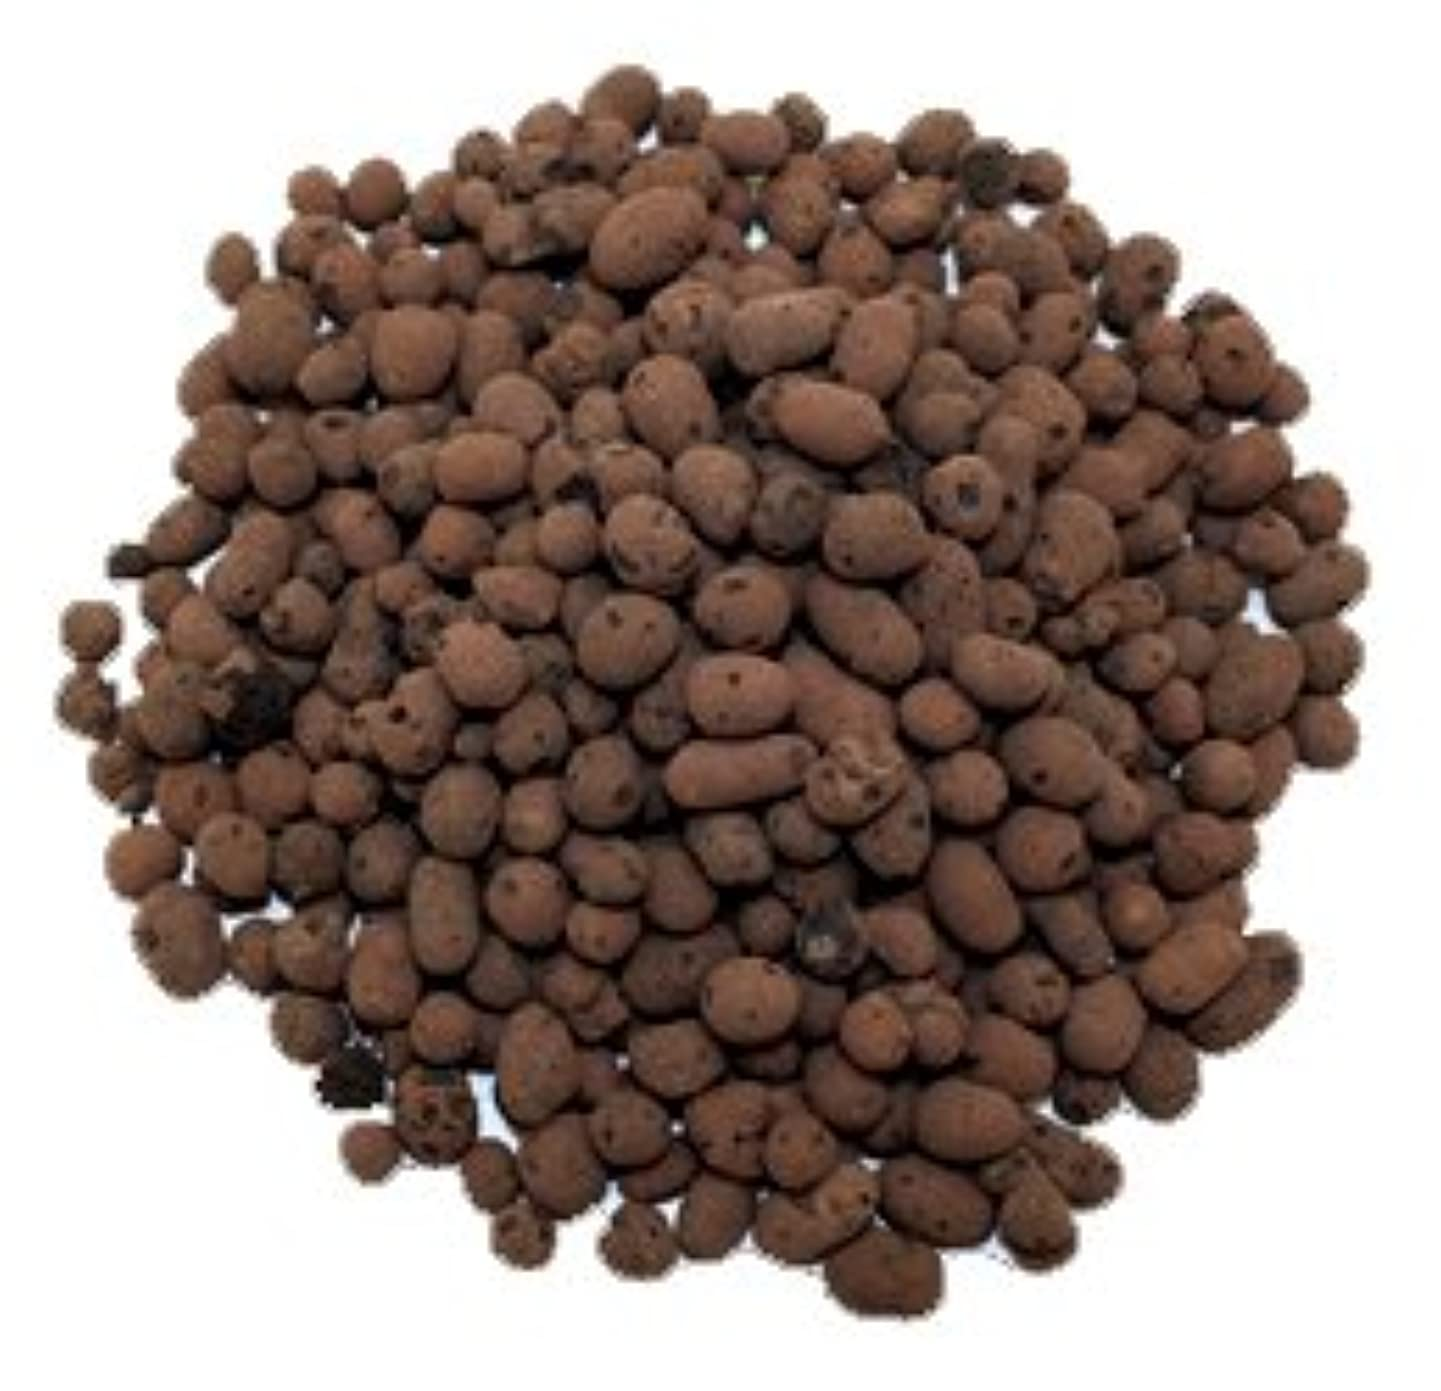 Leca Clay Orchid/Hydroponic Grow Media - 3 lbs.